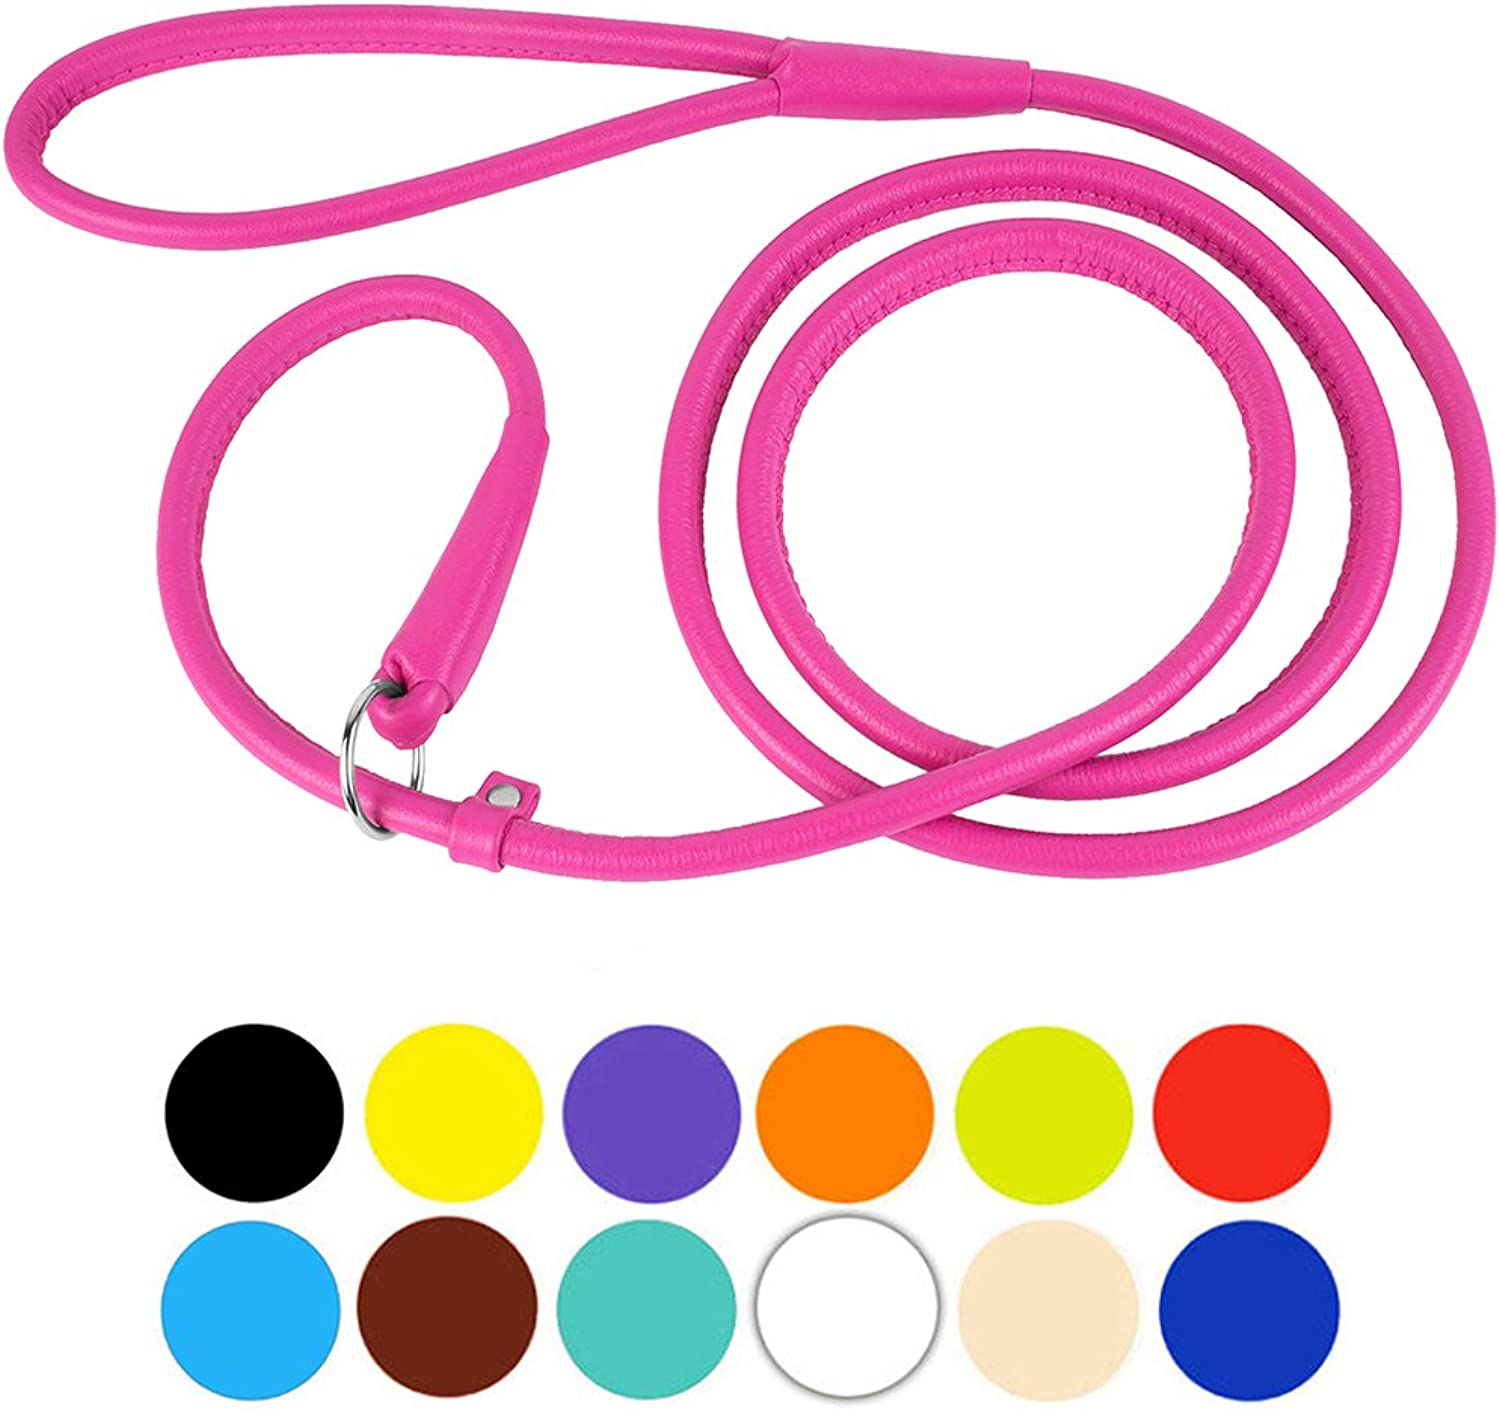 CollarDirect Rolled Leather Dog Leash 6ft or 4ft, Heavy Duty Slip Lead, Slip Leashes for Small Medium Large Dogs, Round Puppy Leash Female Male Pink Black Brown Red (S 6ft, Pink)